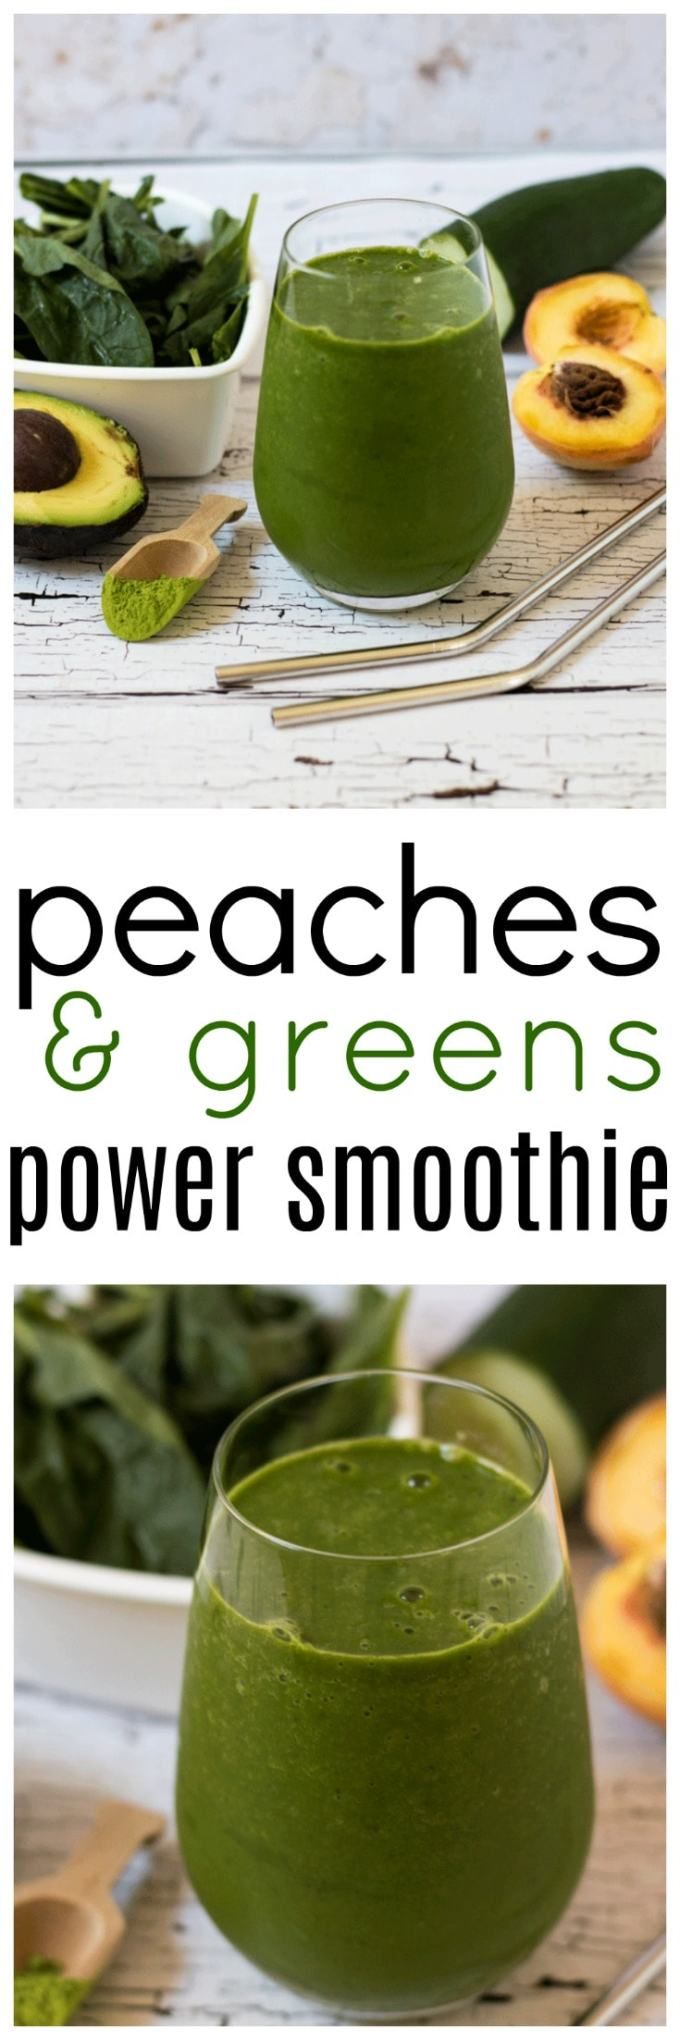 Squeeze as much goodness as you can into one smoothie with this super delicious Peaches and Green Power Smoothie packed with all the green goods.